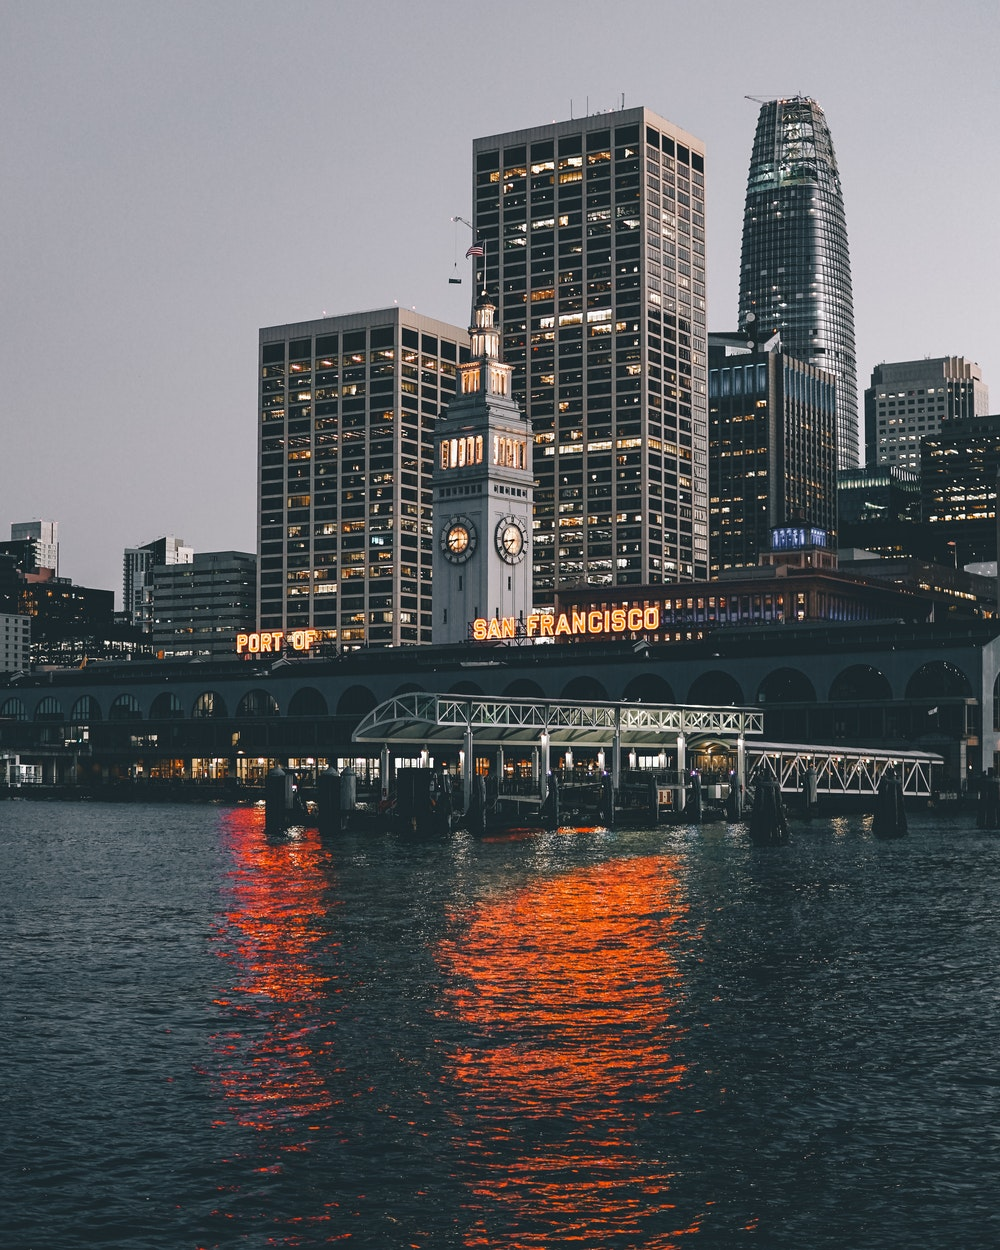 1000x1250 San Francisco Ferry Building Pictures | Download Free Images on Unsplash